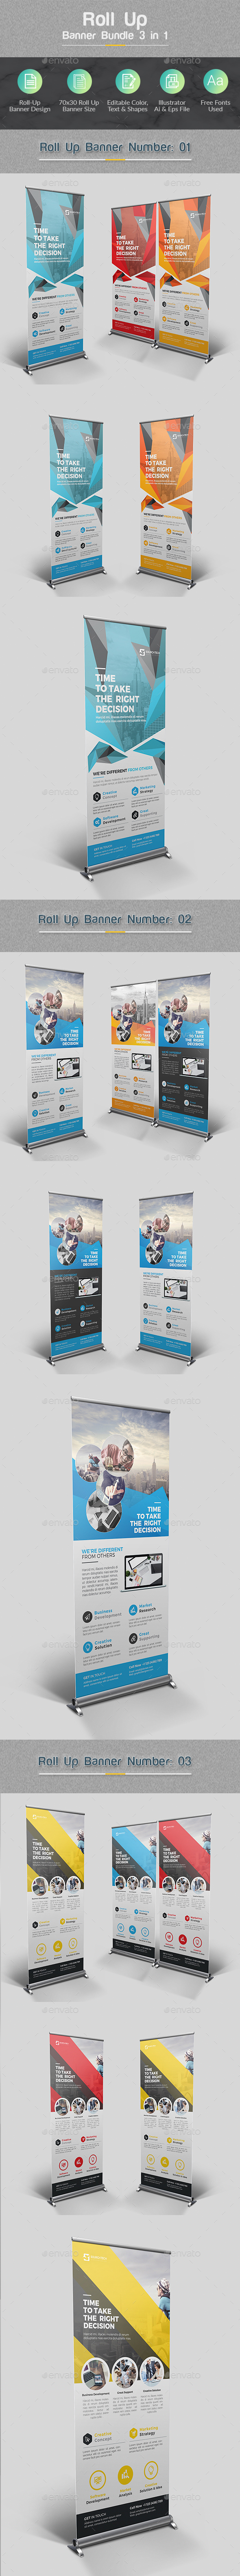 Roll Up Banner Bundle 3 in 1 - Corporate Brochures